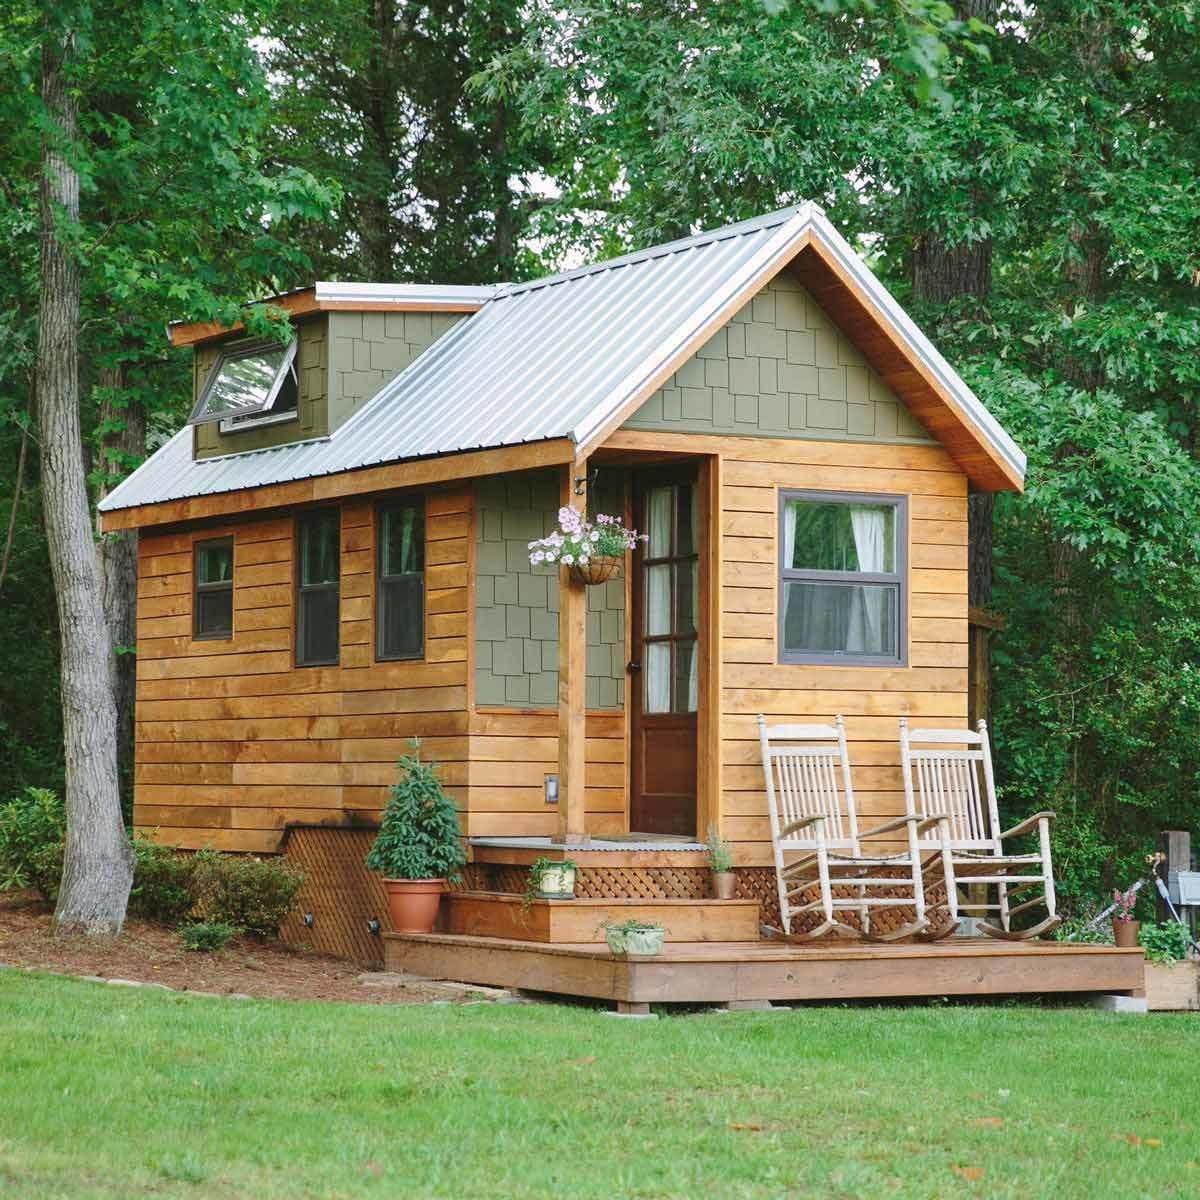 Small Backyard Guest House Plans: Backyard Cottage, Wooden House